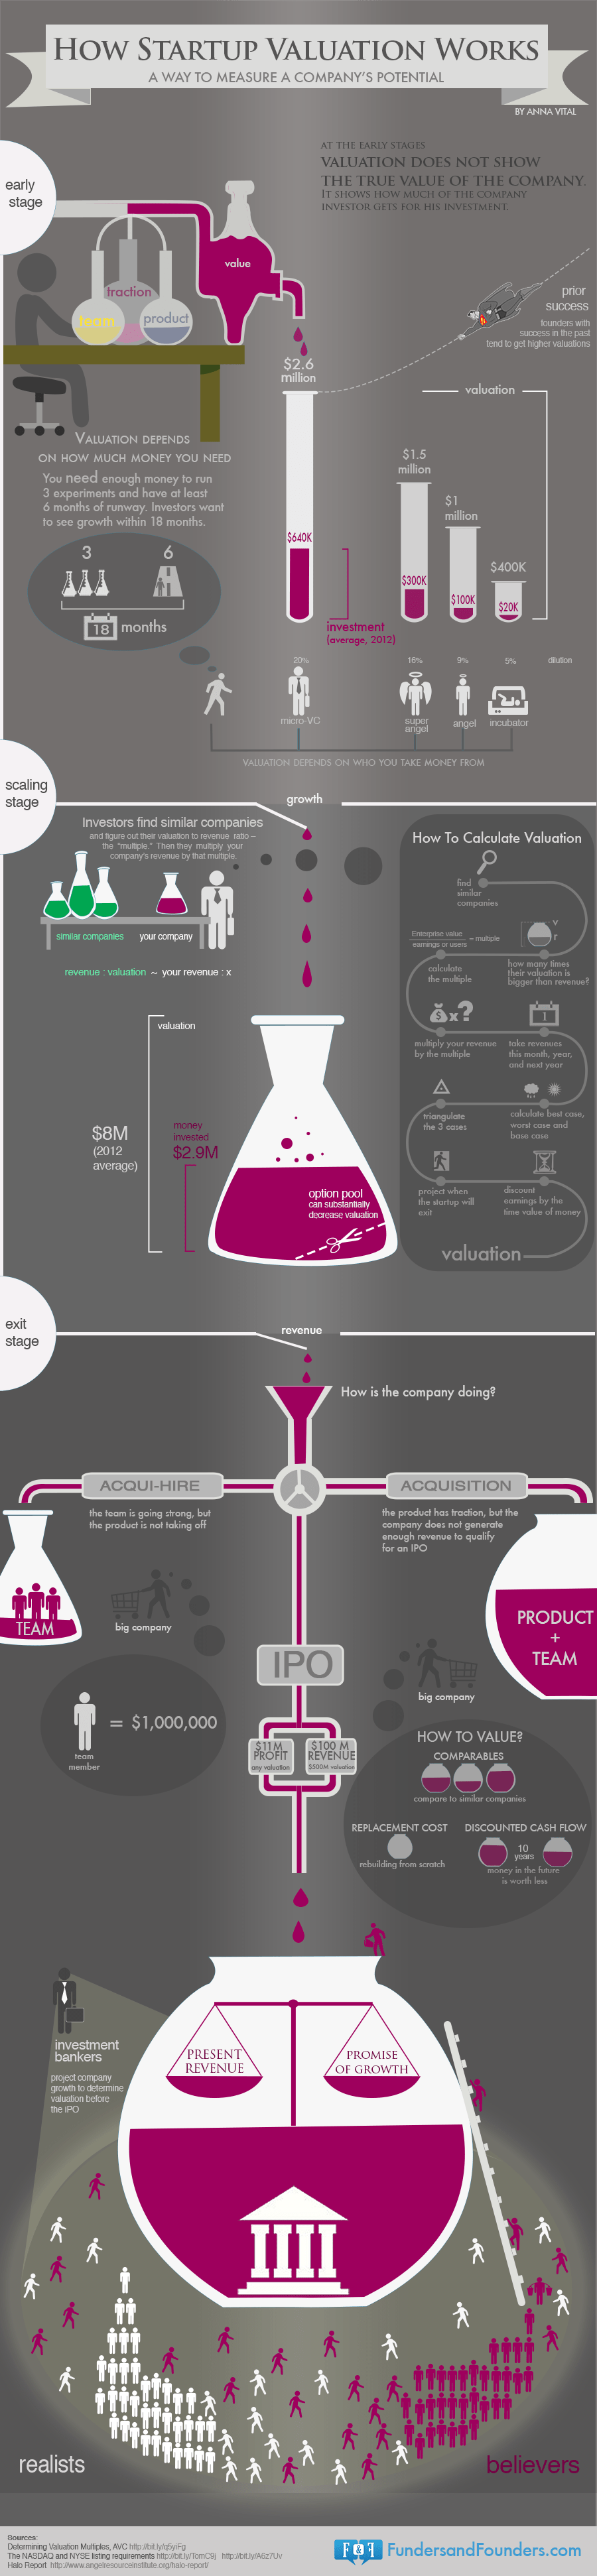 How Startup Valuation Works Infographic